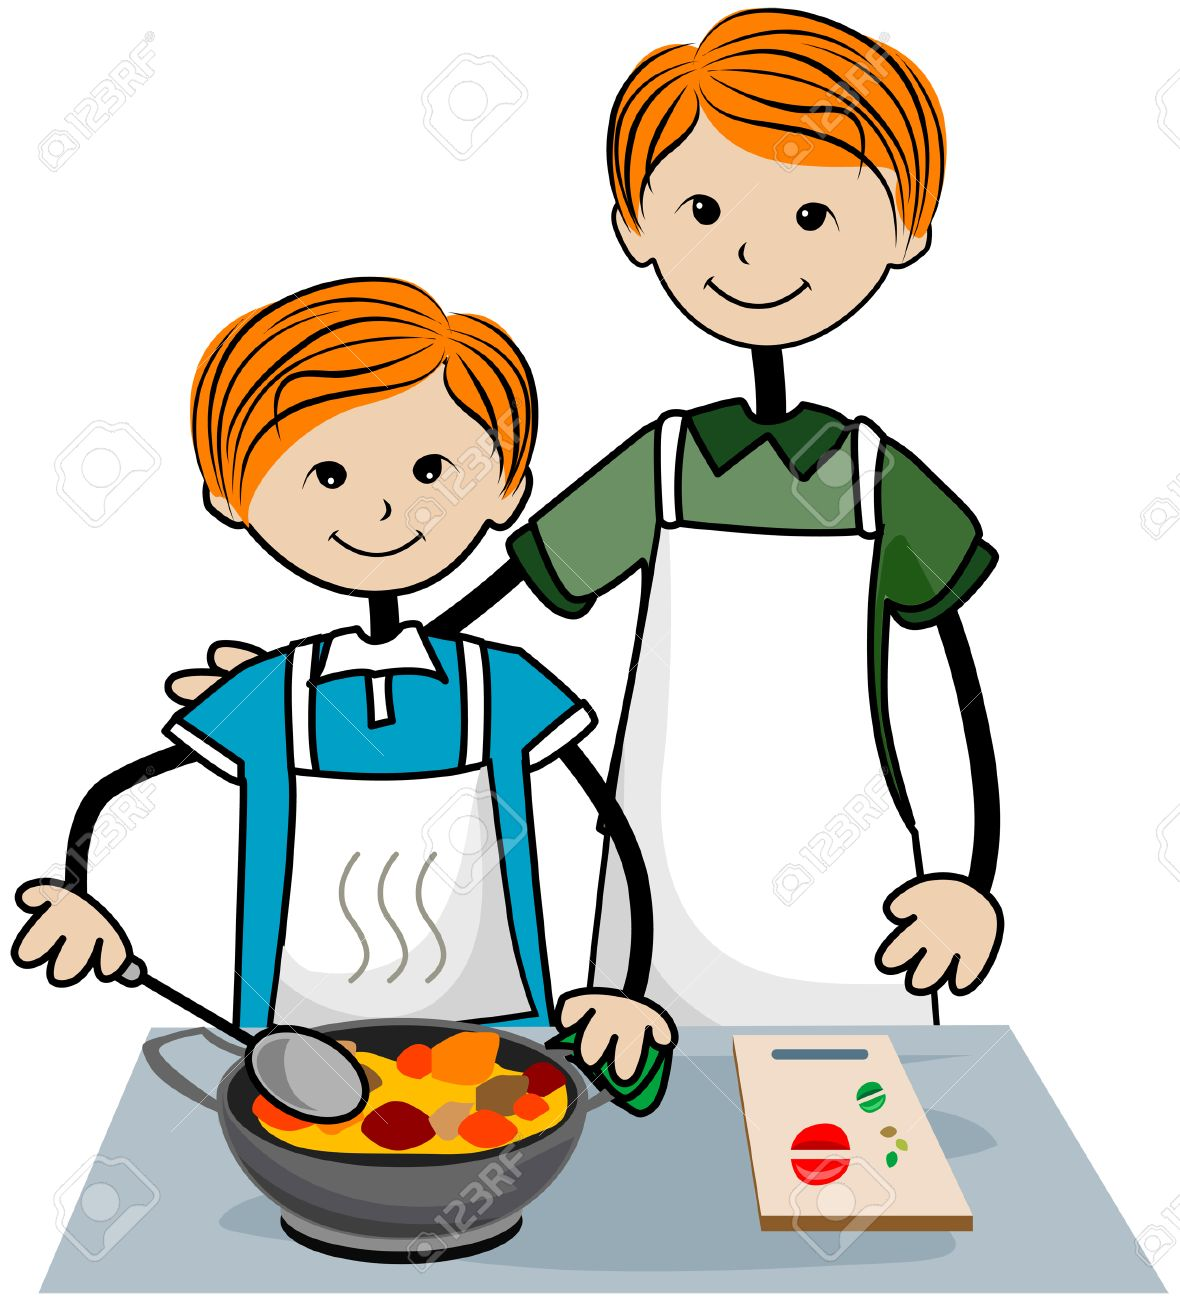 Cooking For Kids Clipart.